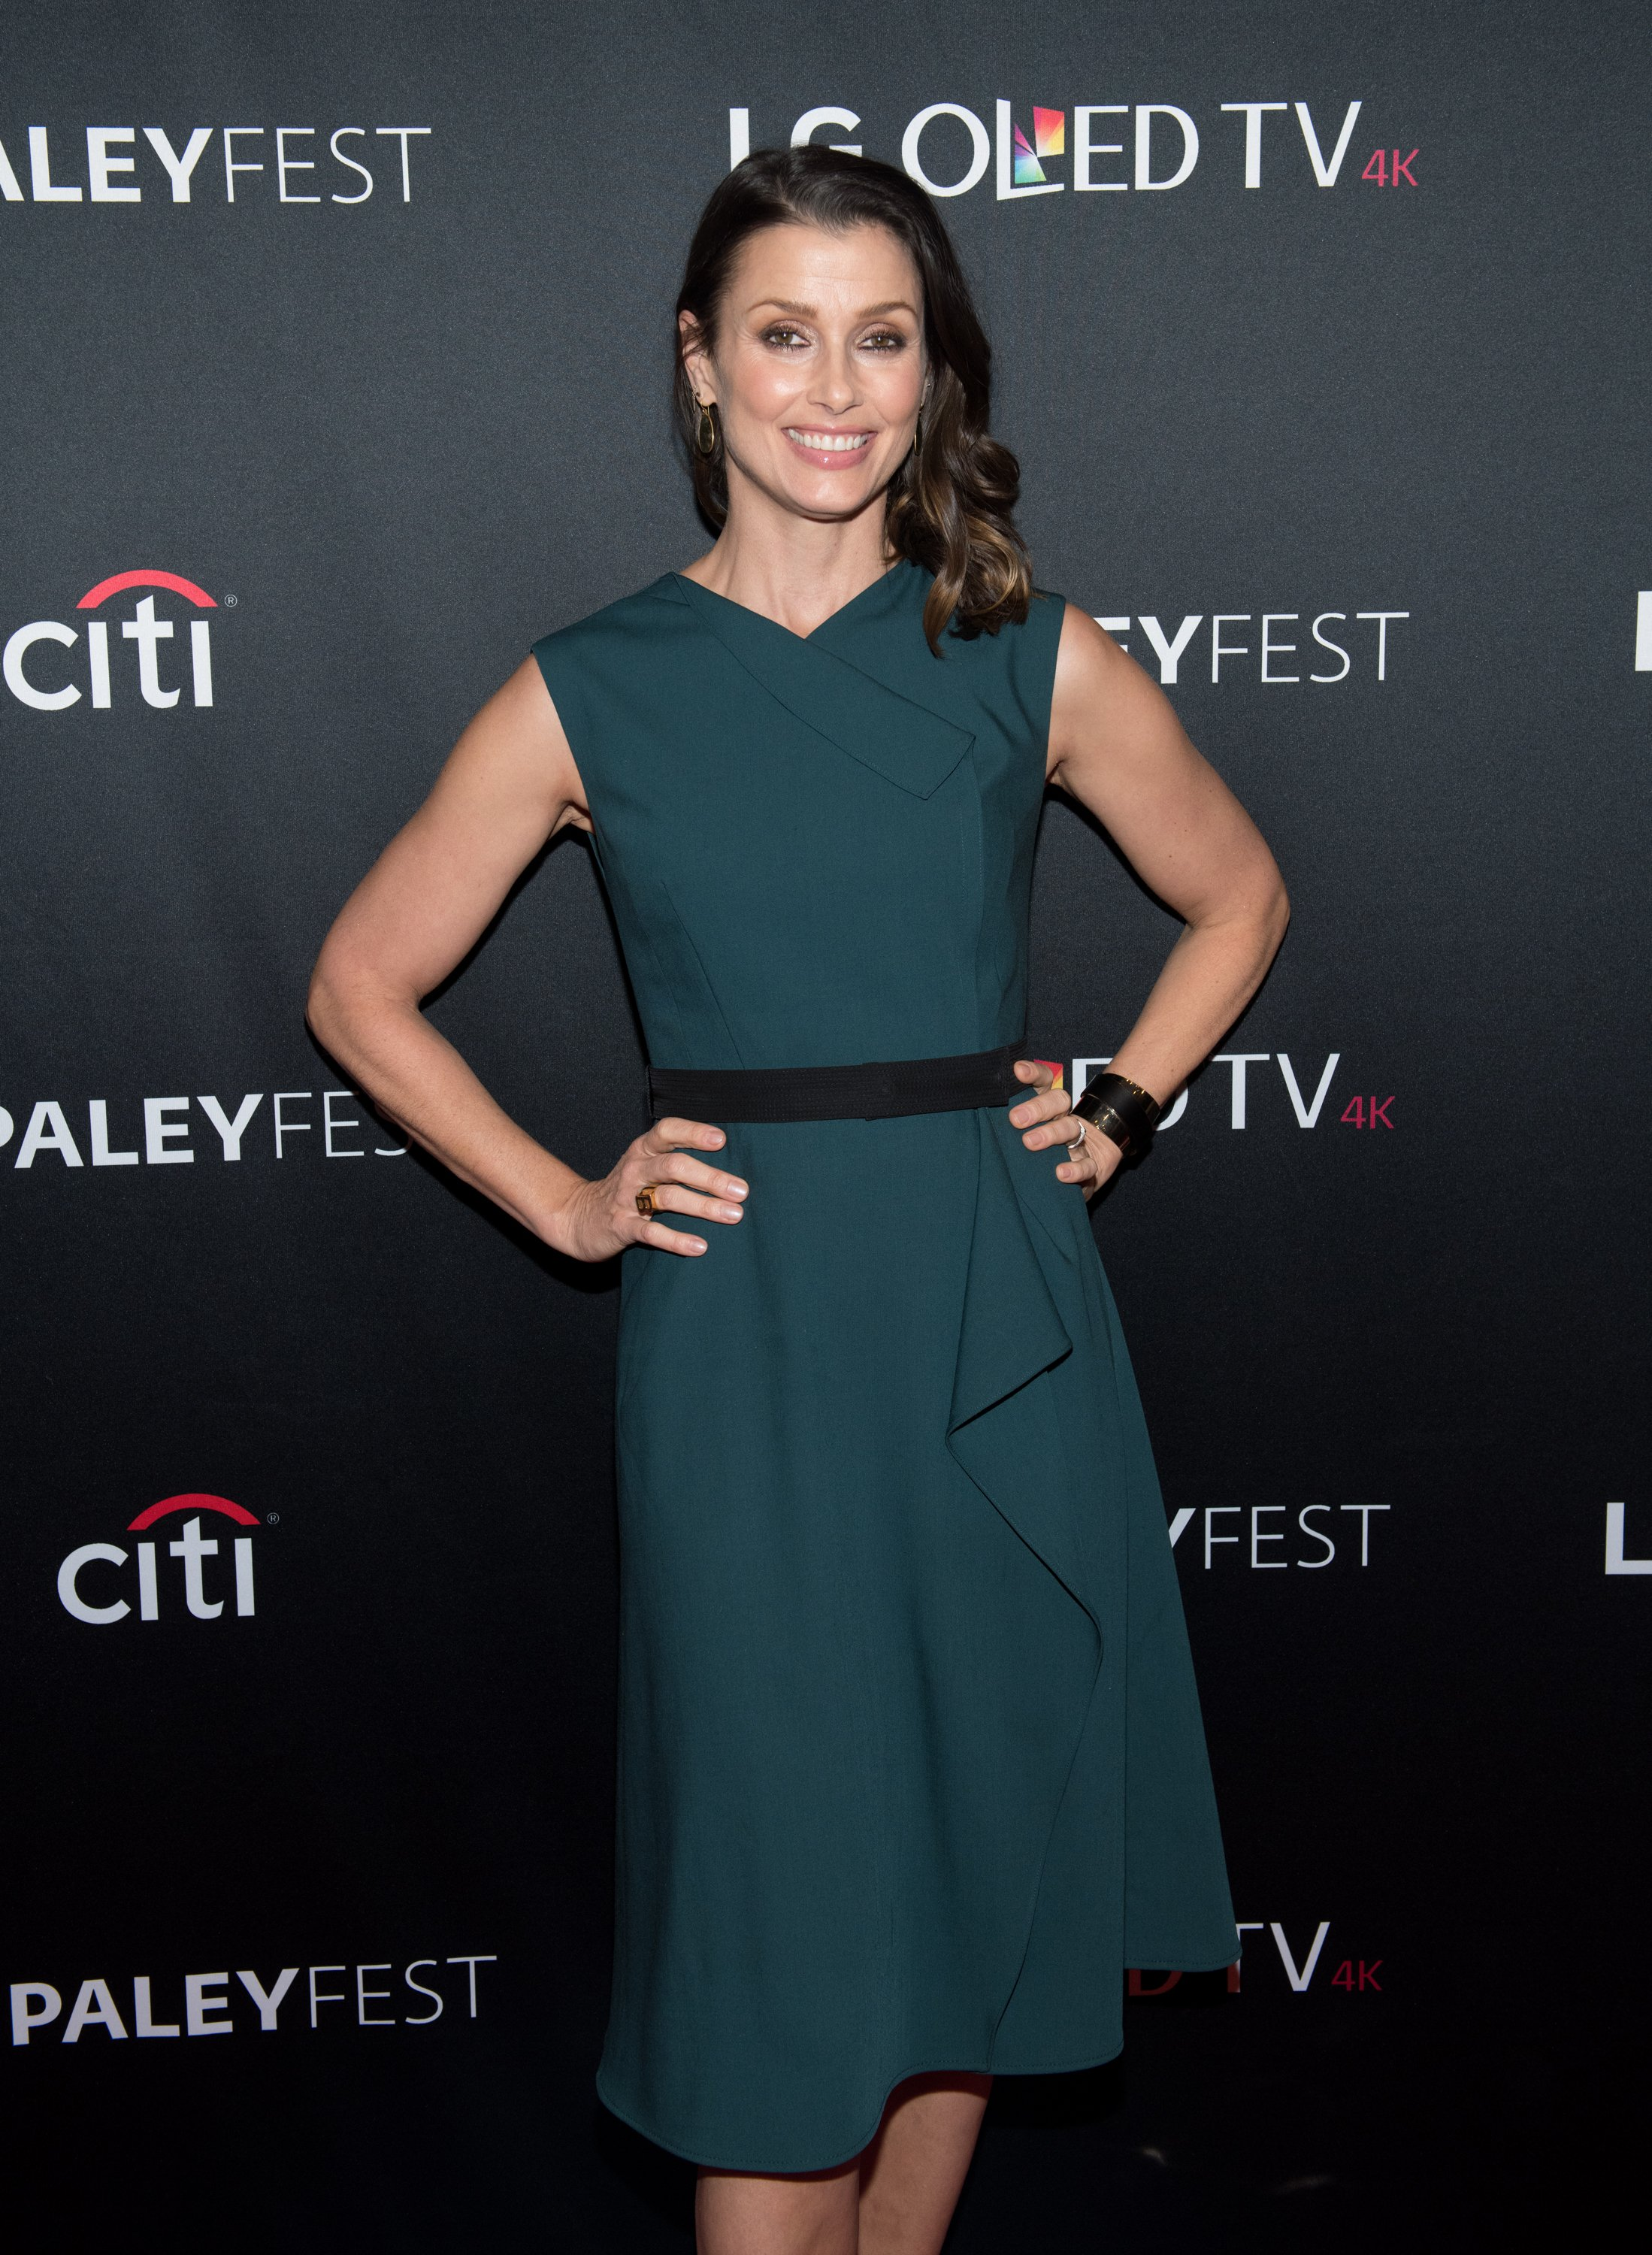 """Bridget Moynahan attends the """"Blue Bloods"""" screening during PaleyFest NY 2017 at The Paley Center for Media on October 16, 2017 